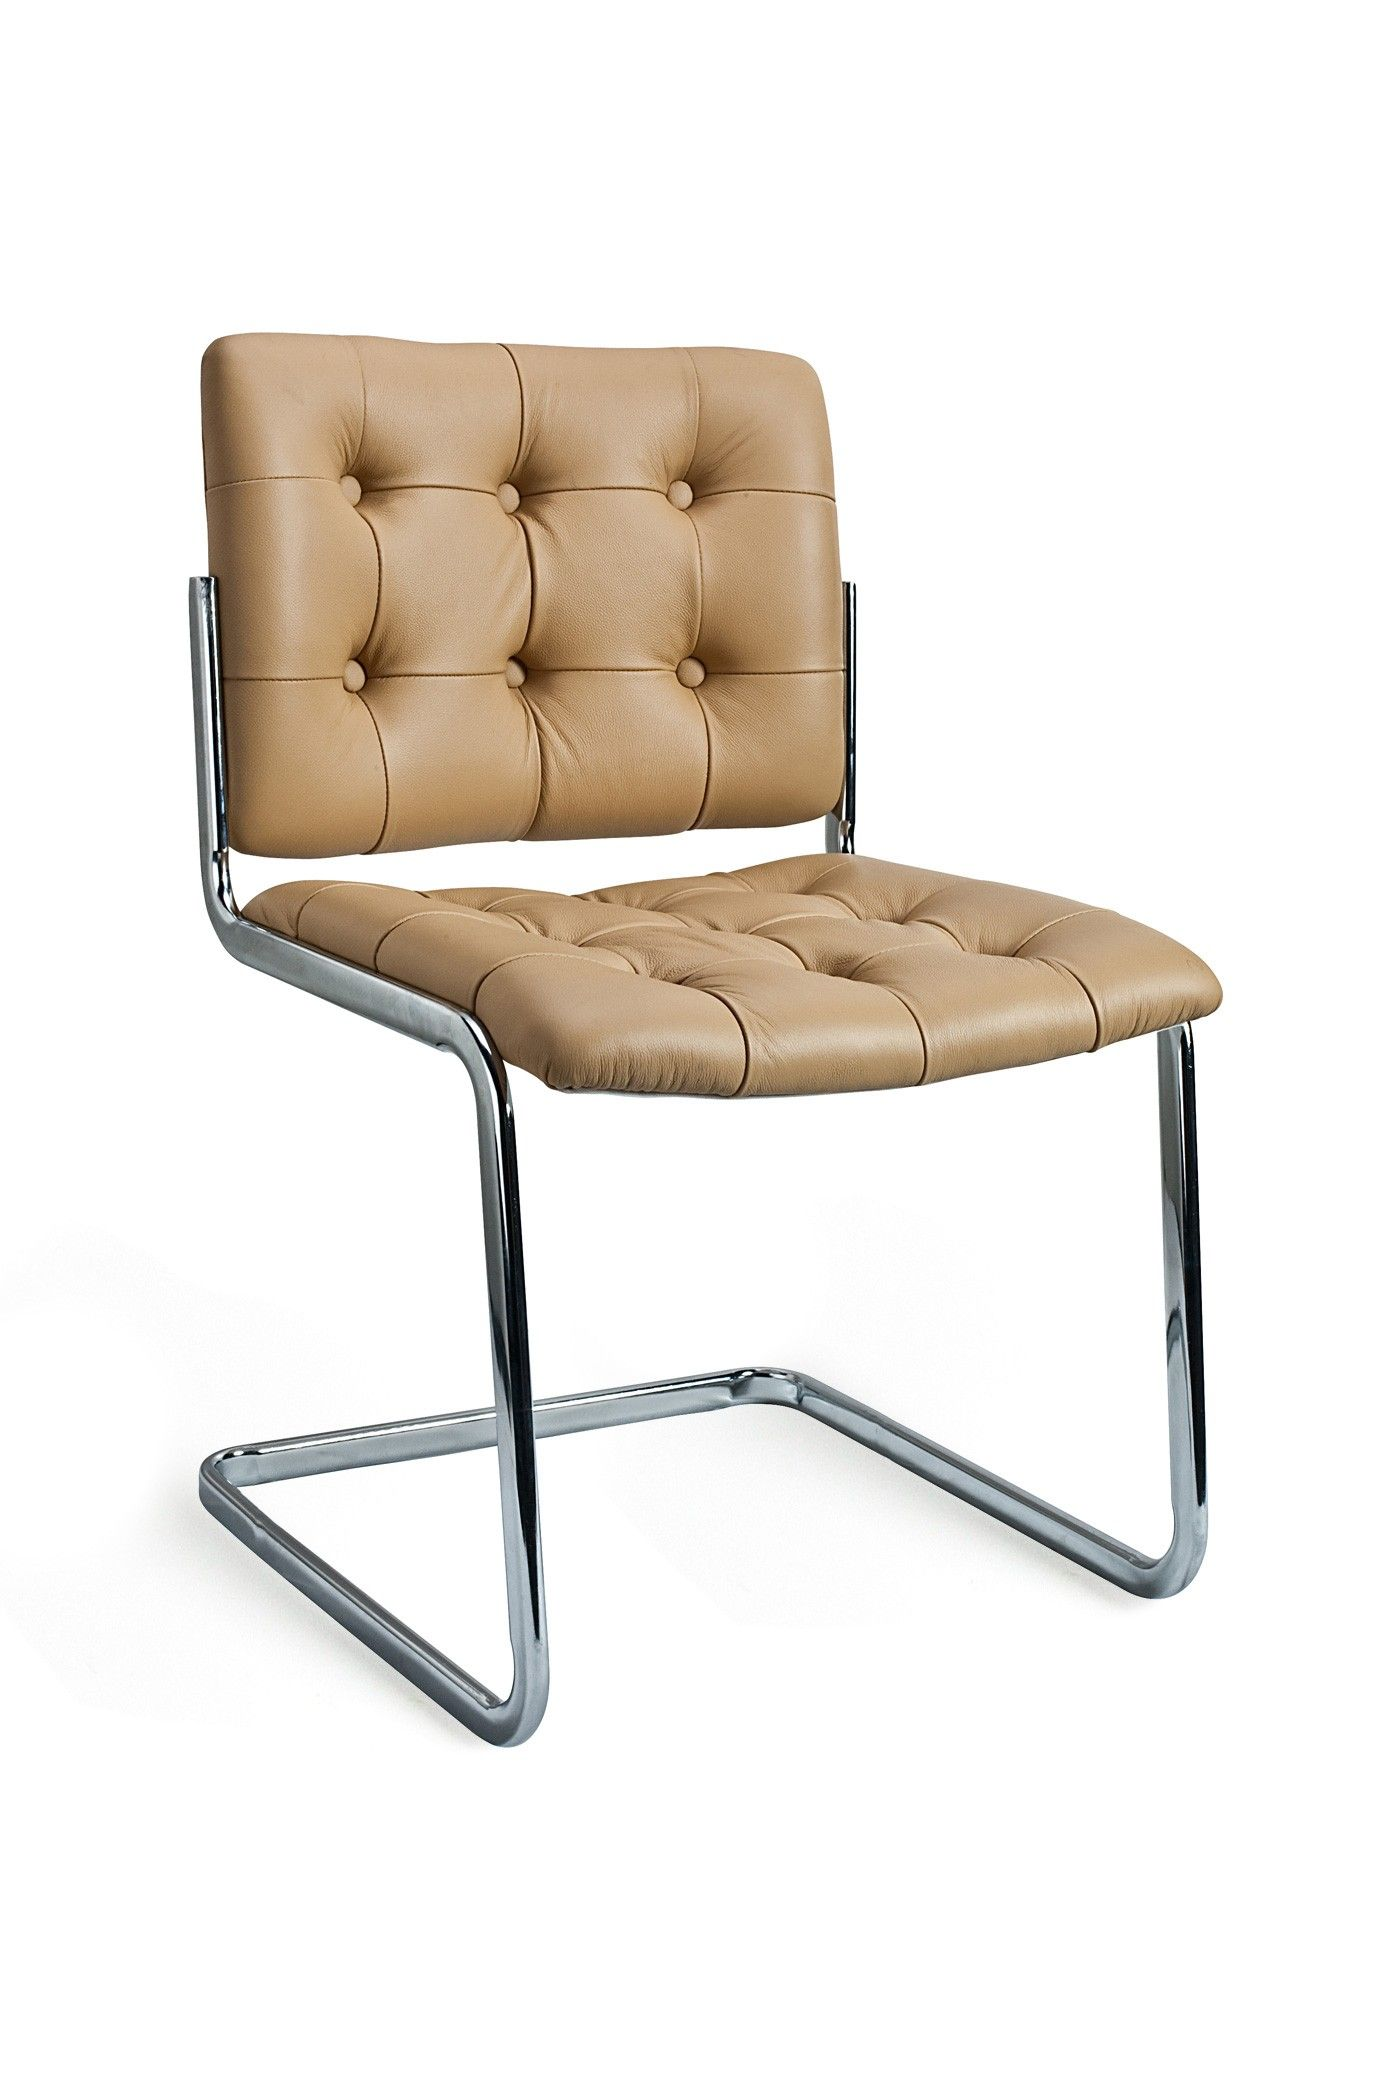 Amazing Ghent Side Chair Safari / Industry West: Perfect As An Office Chair!